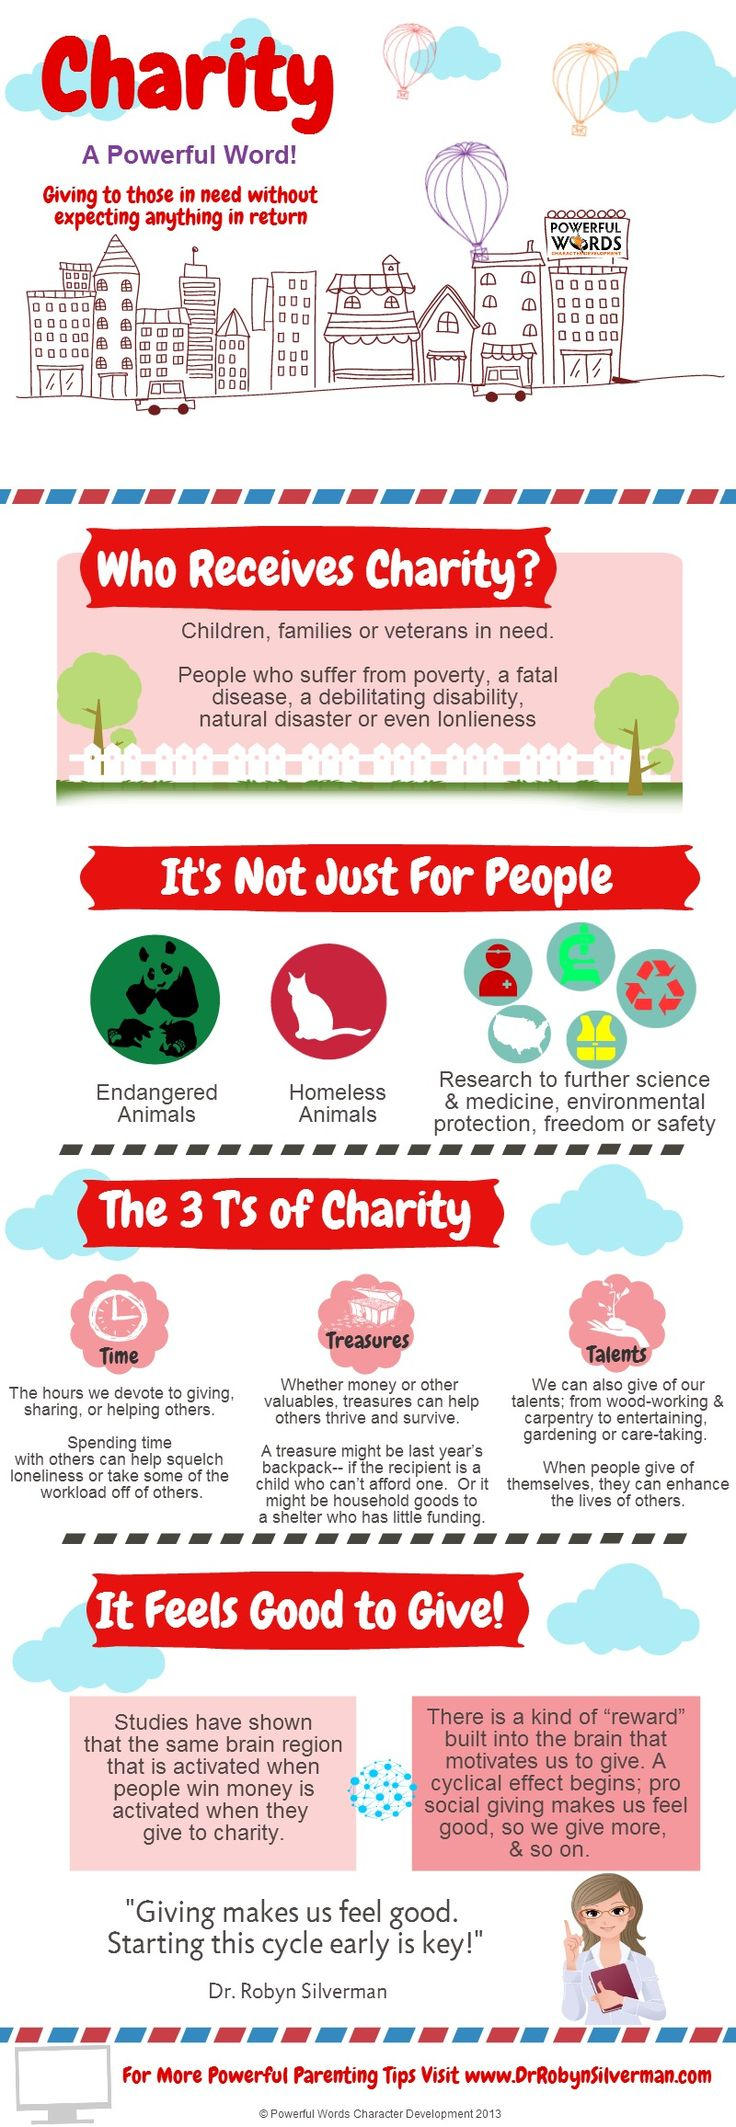 471 Best Charity Fundraising Help Images On Pinterest